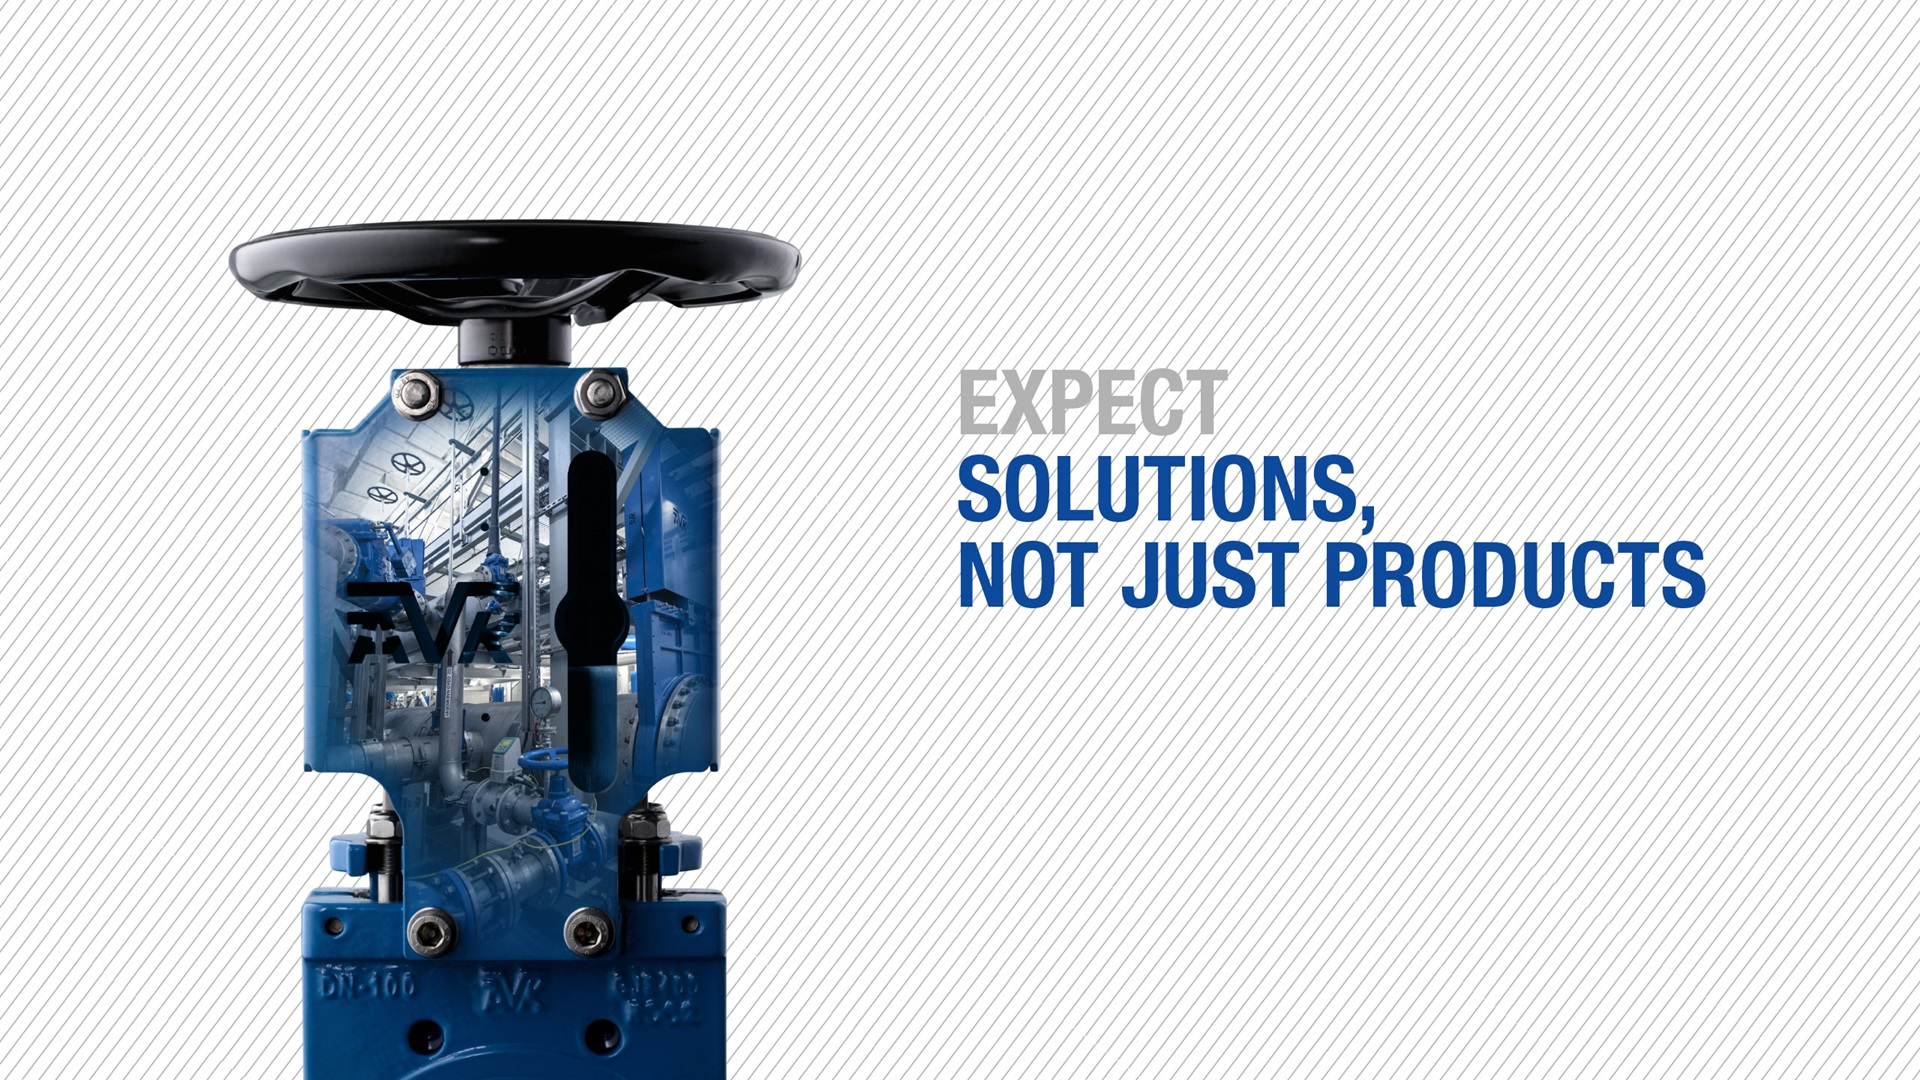 Expect solutions from AVK